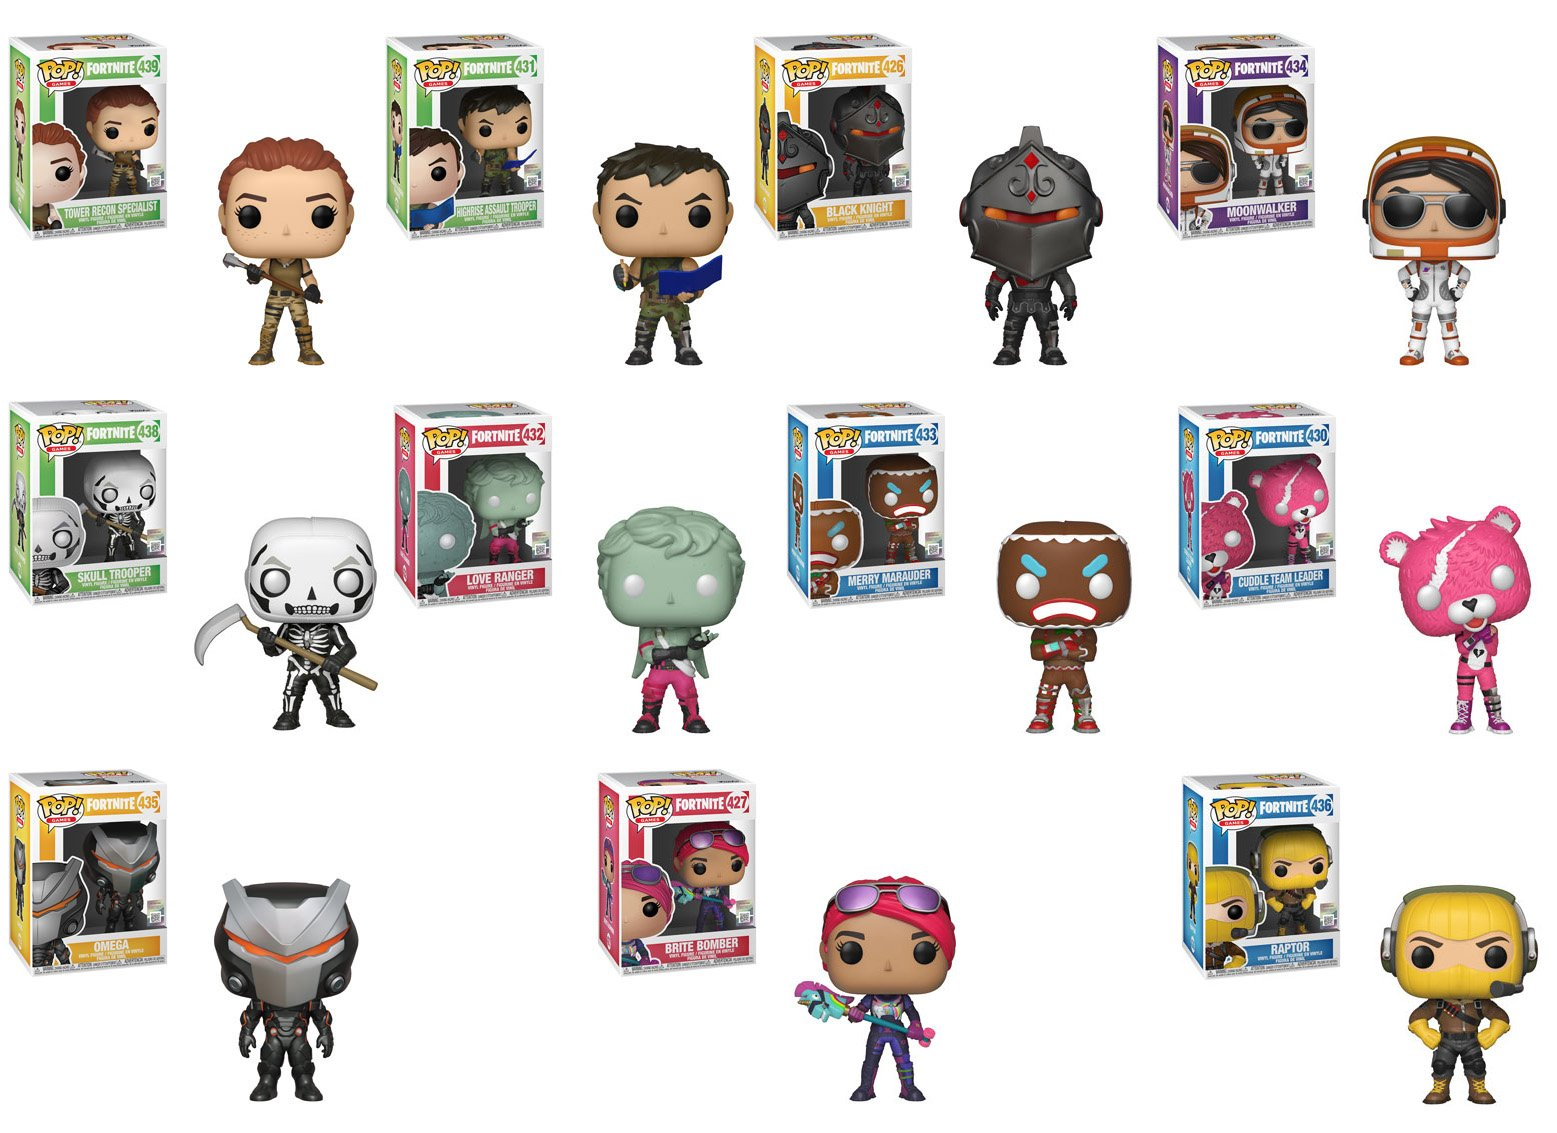 this wave also has three exclusive fortnite funkos crackshot which is exclusive to walmart red nosed raider which is exclusive to gamestop eb games - fortnite game xbox one gamestop